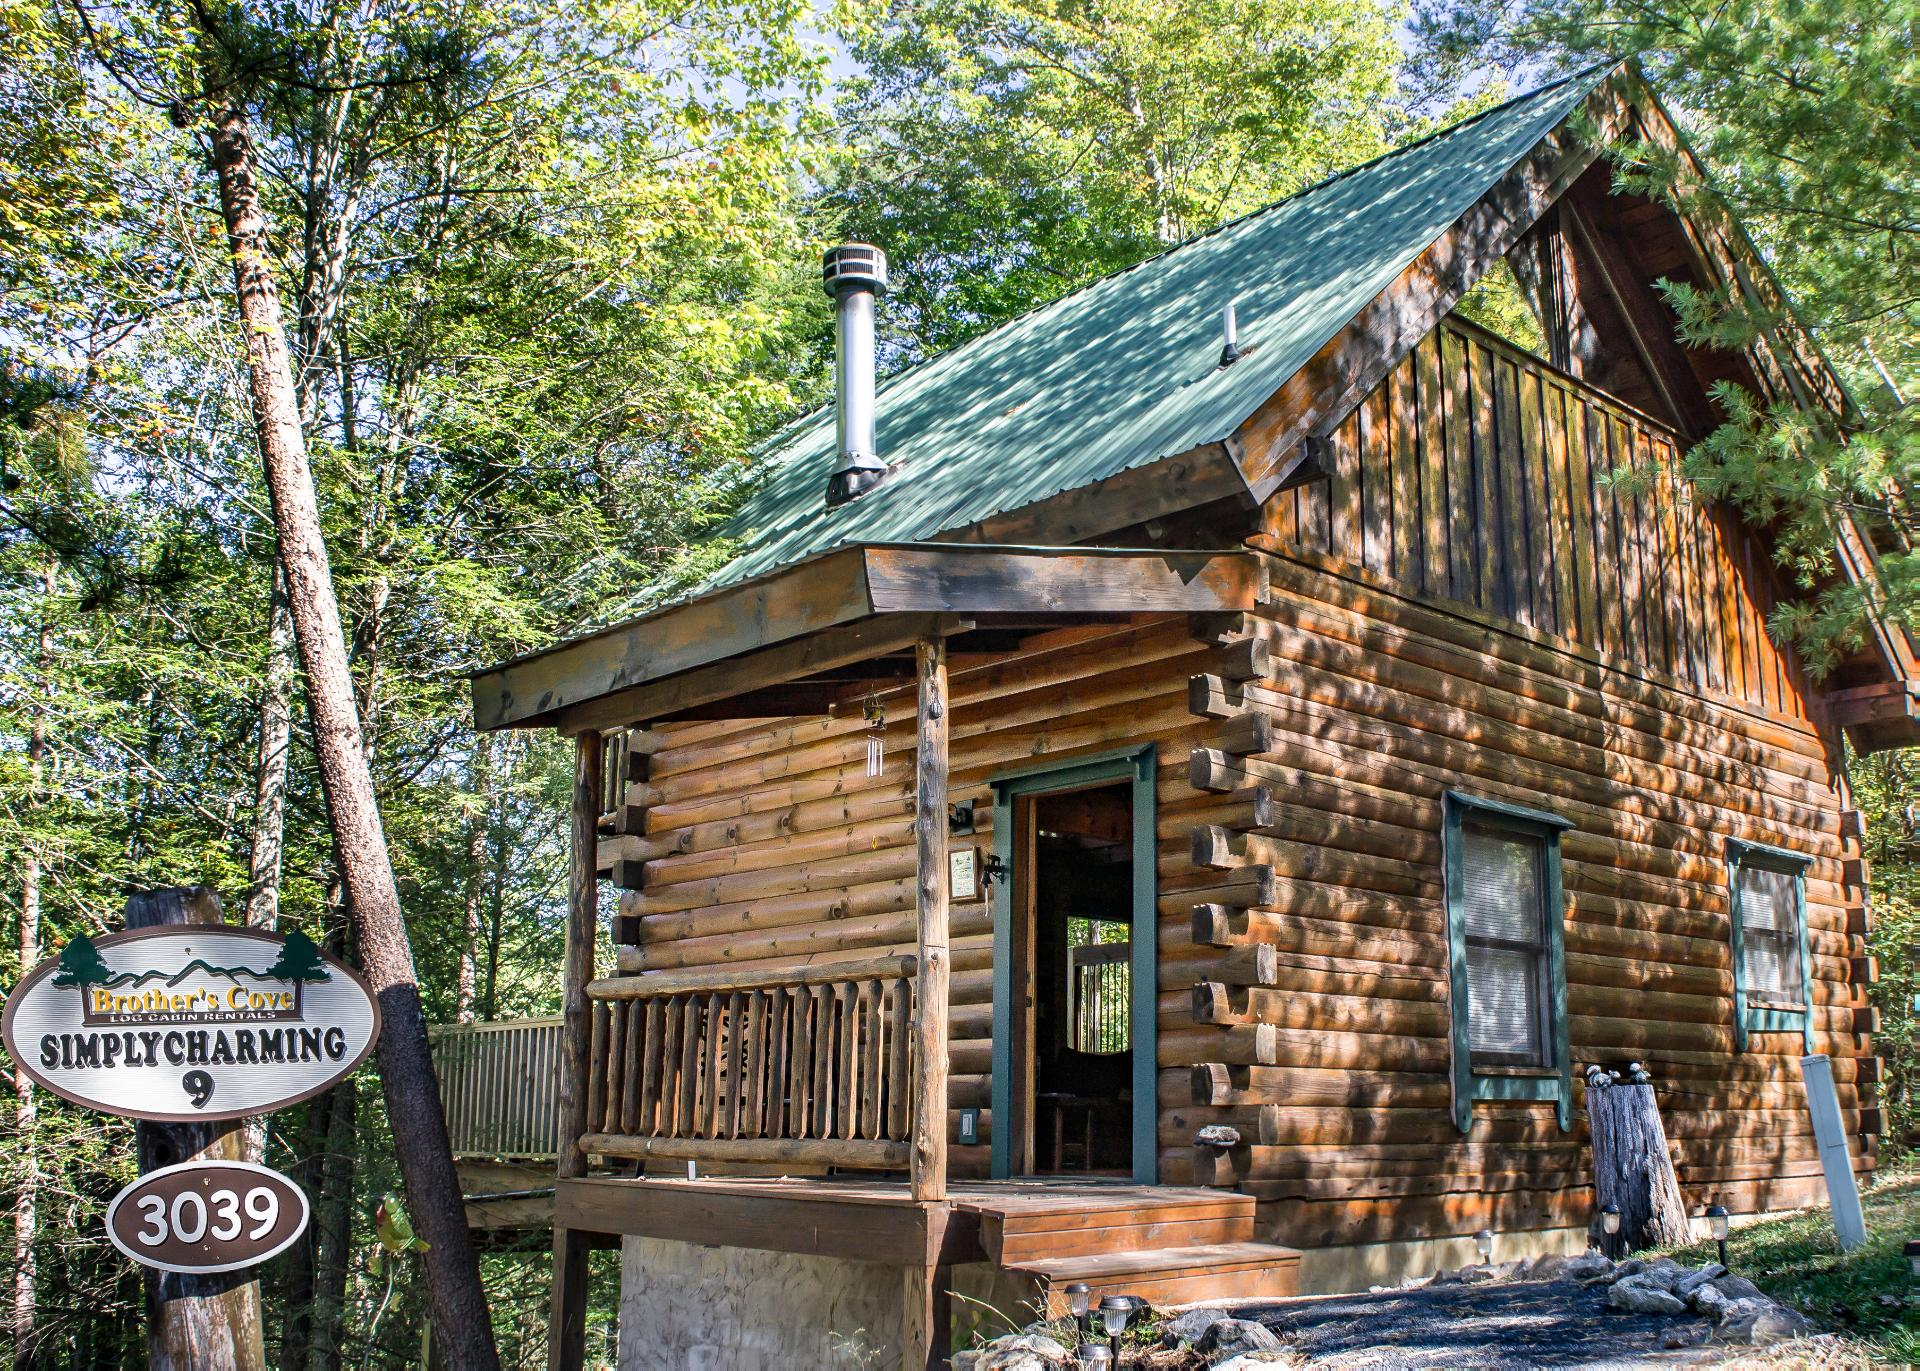 tennessee tn cheap rentals drobek for in rent log cabins cabin s rental info vacation gatlinburg